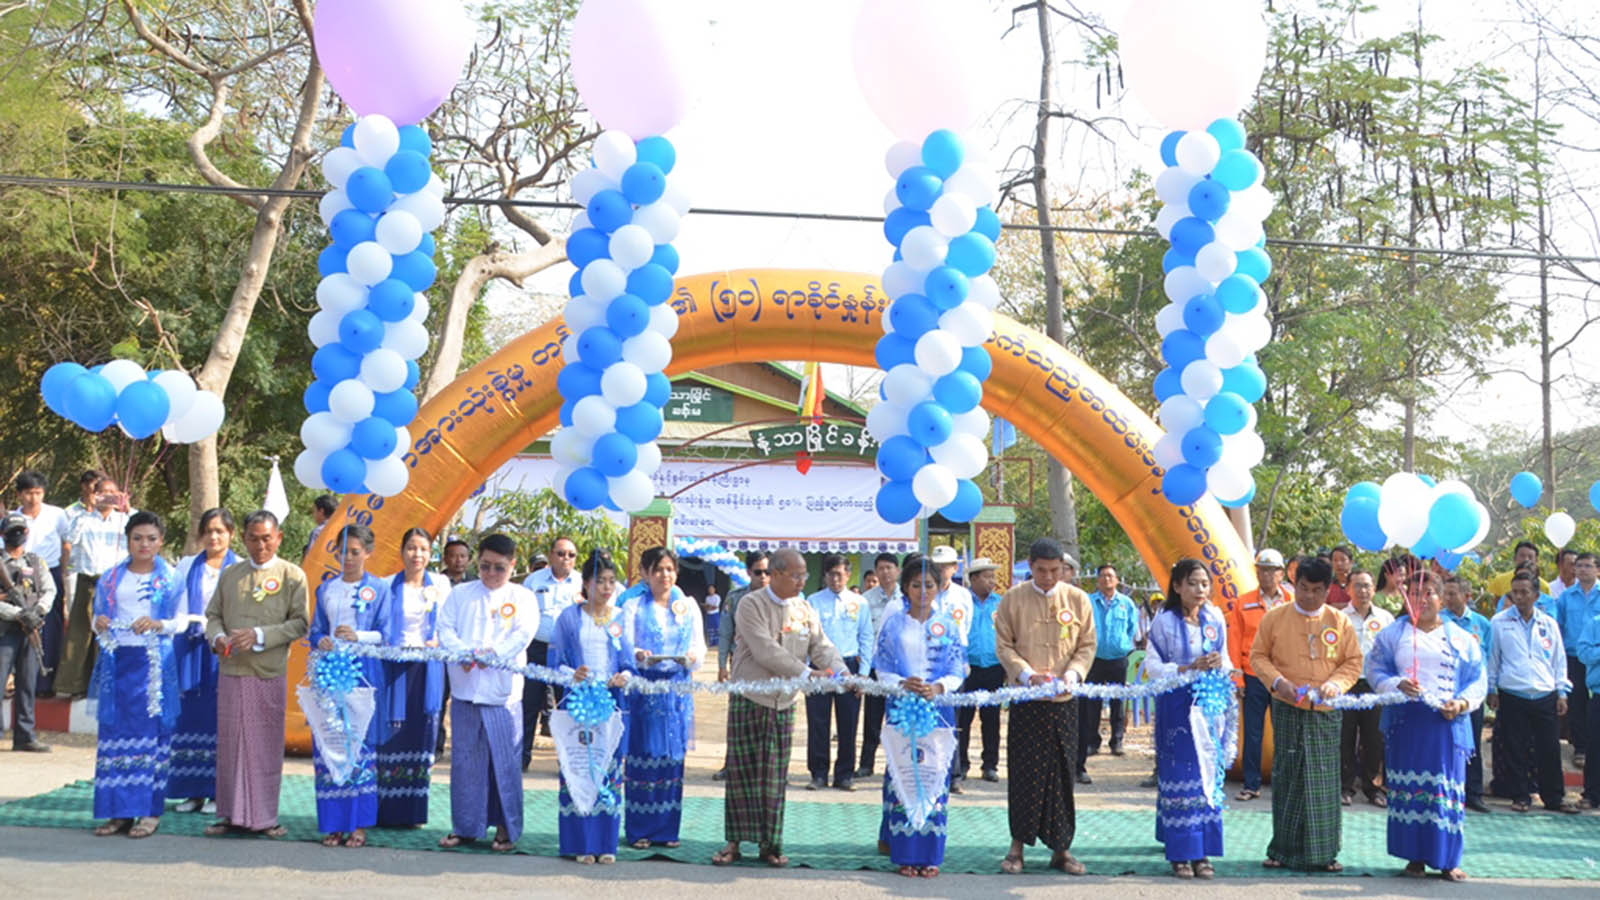 Officials cut the ribbon during the ceremony to mark electrification in 60 villages in Myaing Township in Magway Region.Photo: MNA